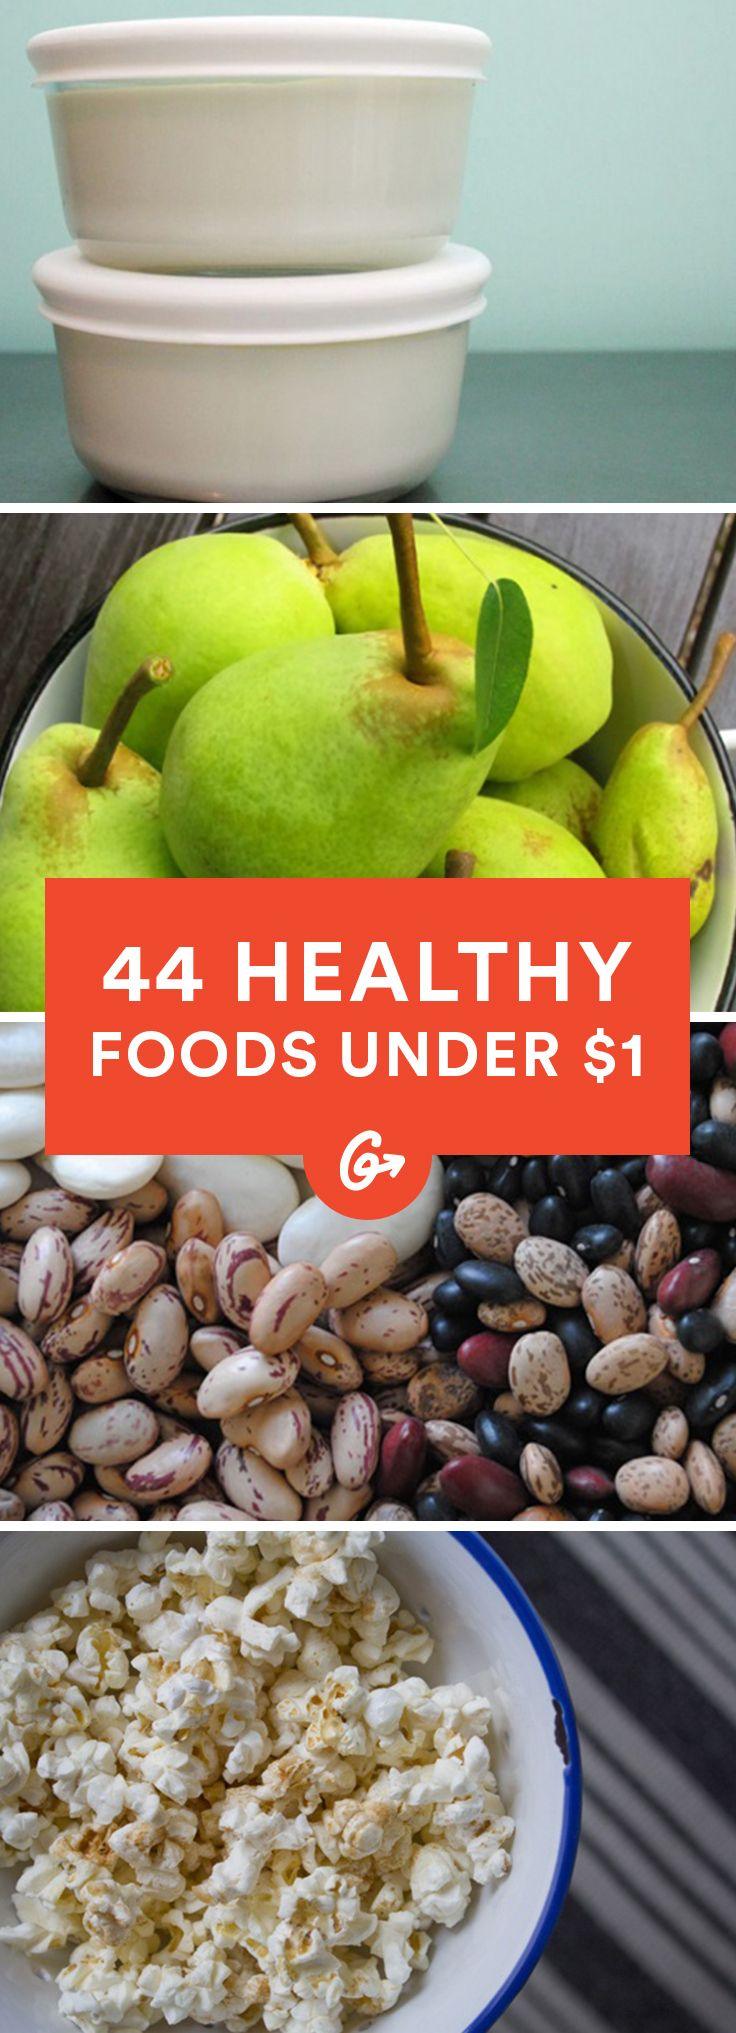 Millions of families across the U.S. are living without access to nutritious food. This year... #cheap #healthy #foods http://greatist.com/health/44-healthy-foods-under-1